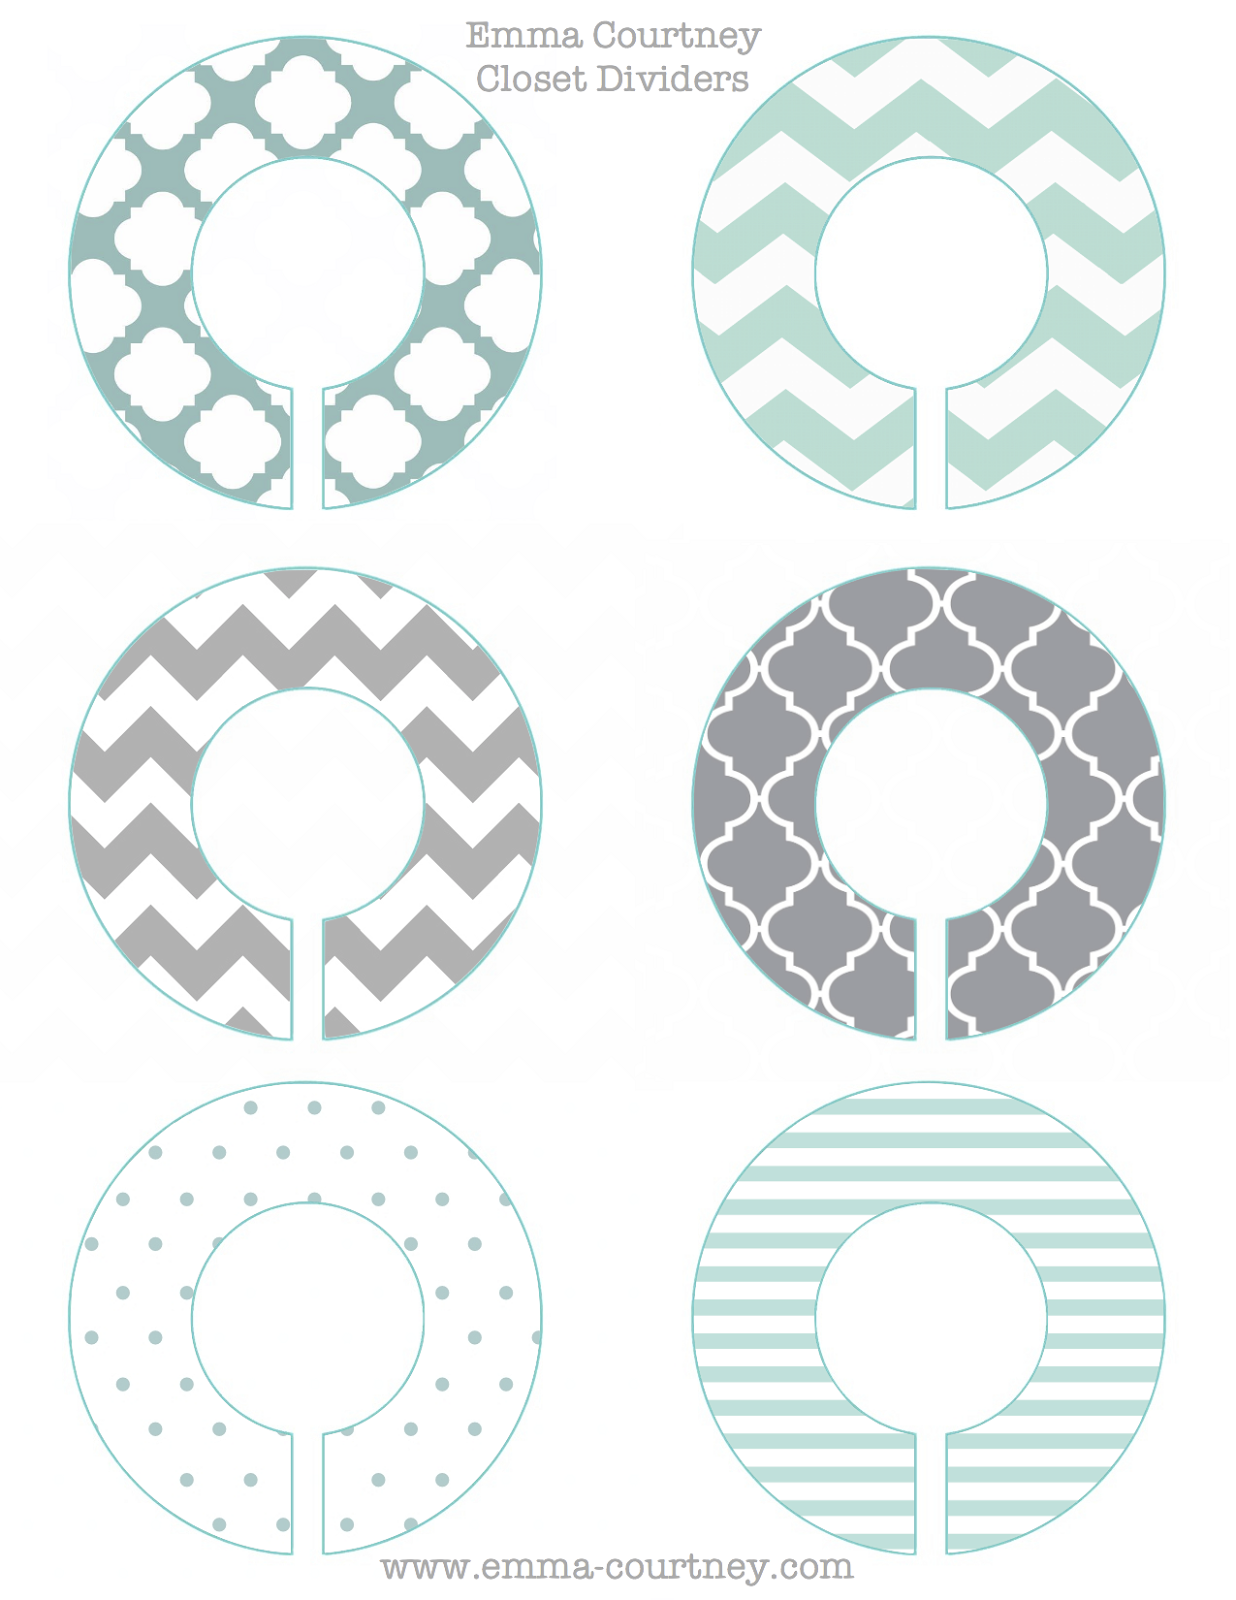 Emma courtney closet dividers printable for Clothes divider template